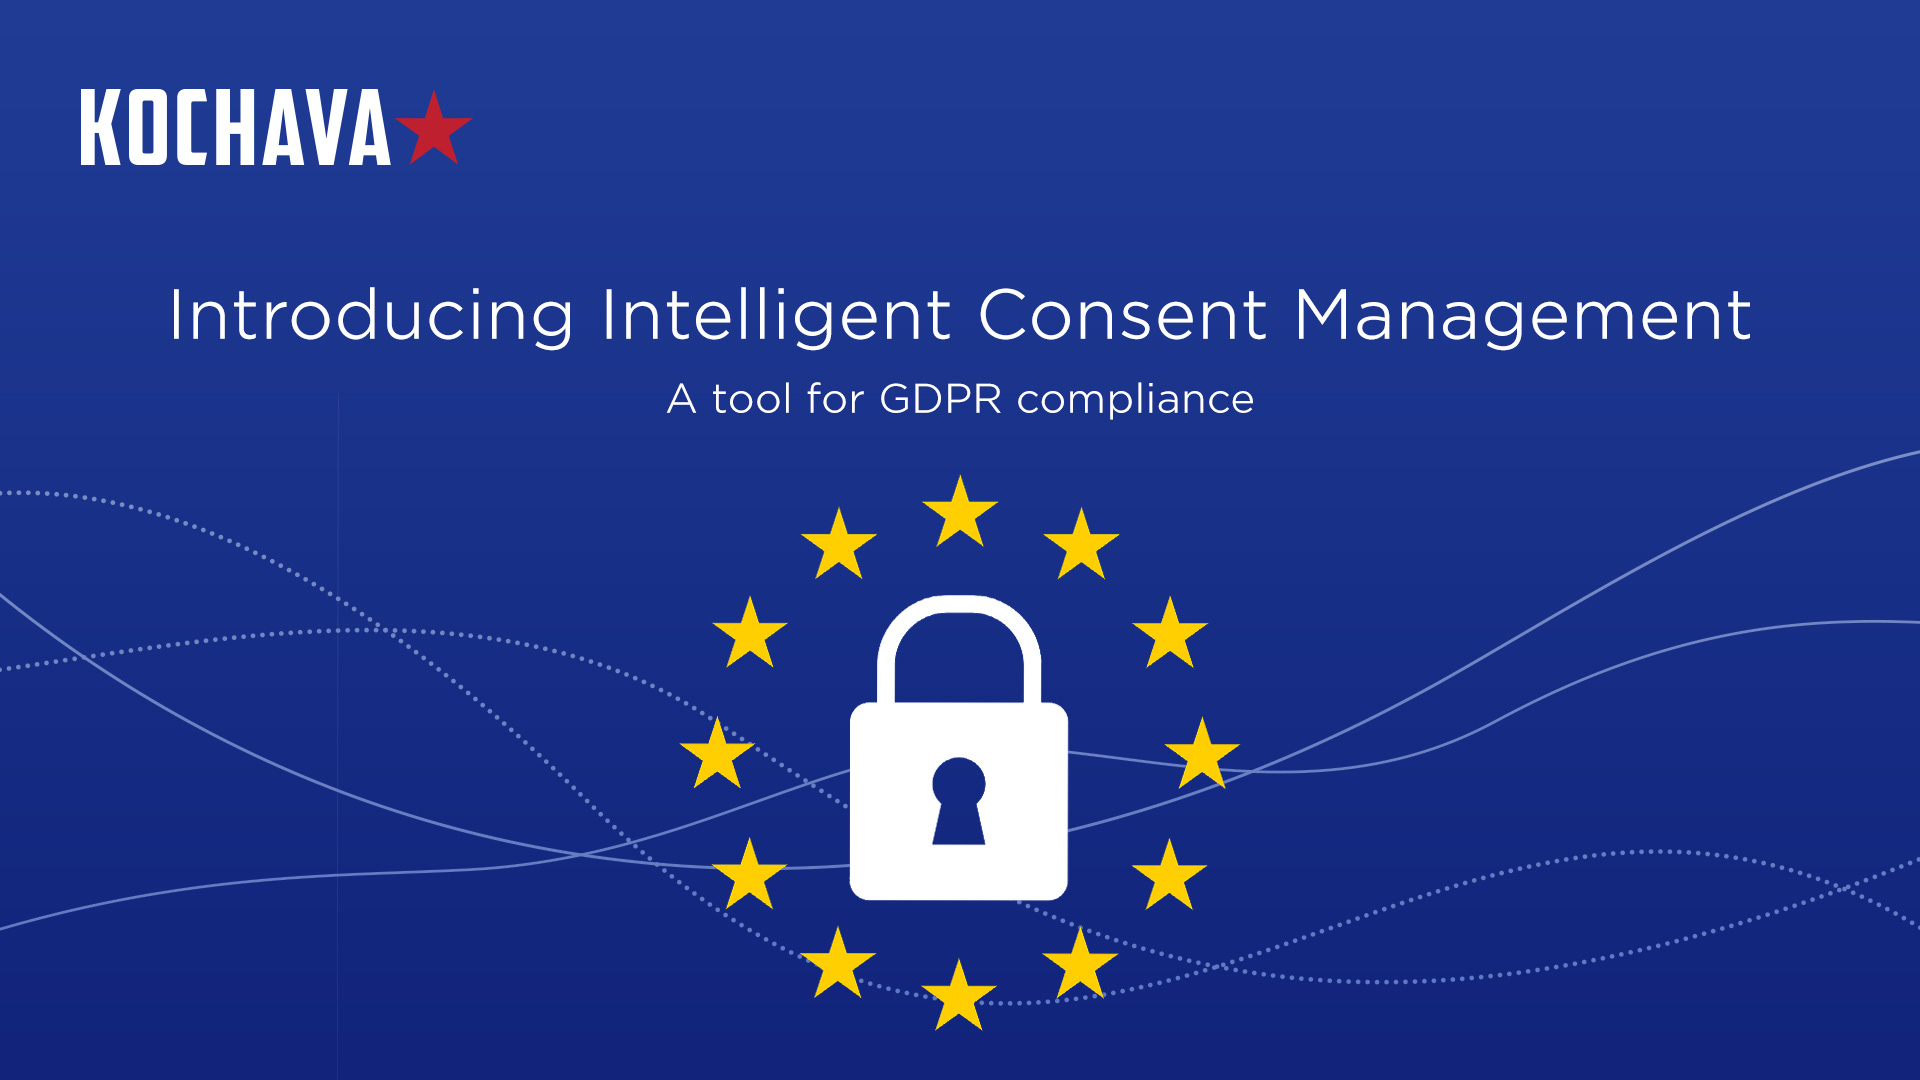 Introducing Intelligent Consent Management